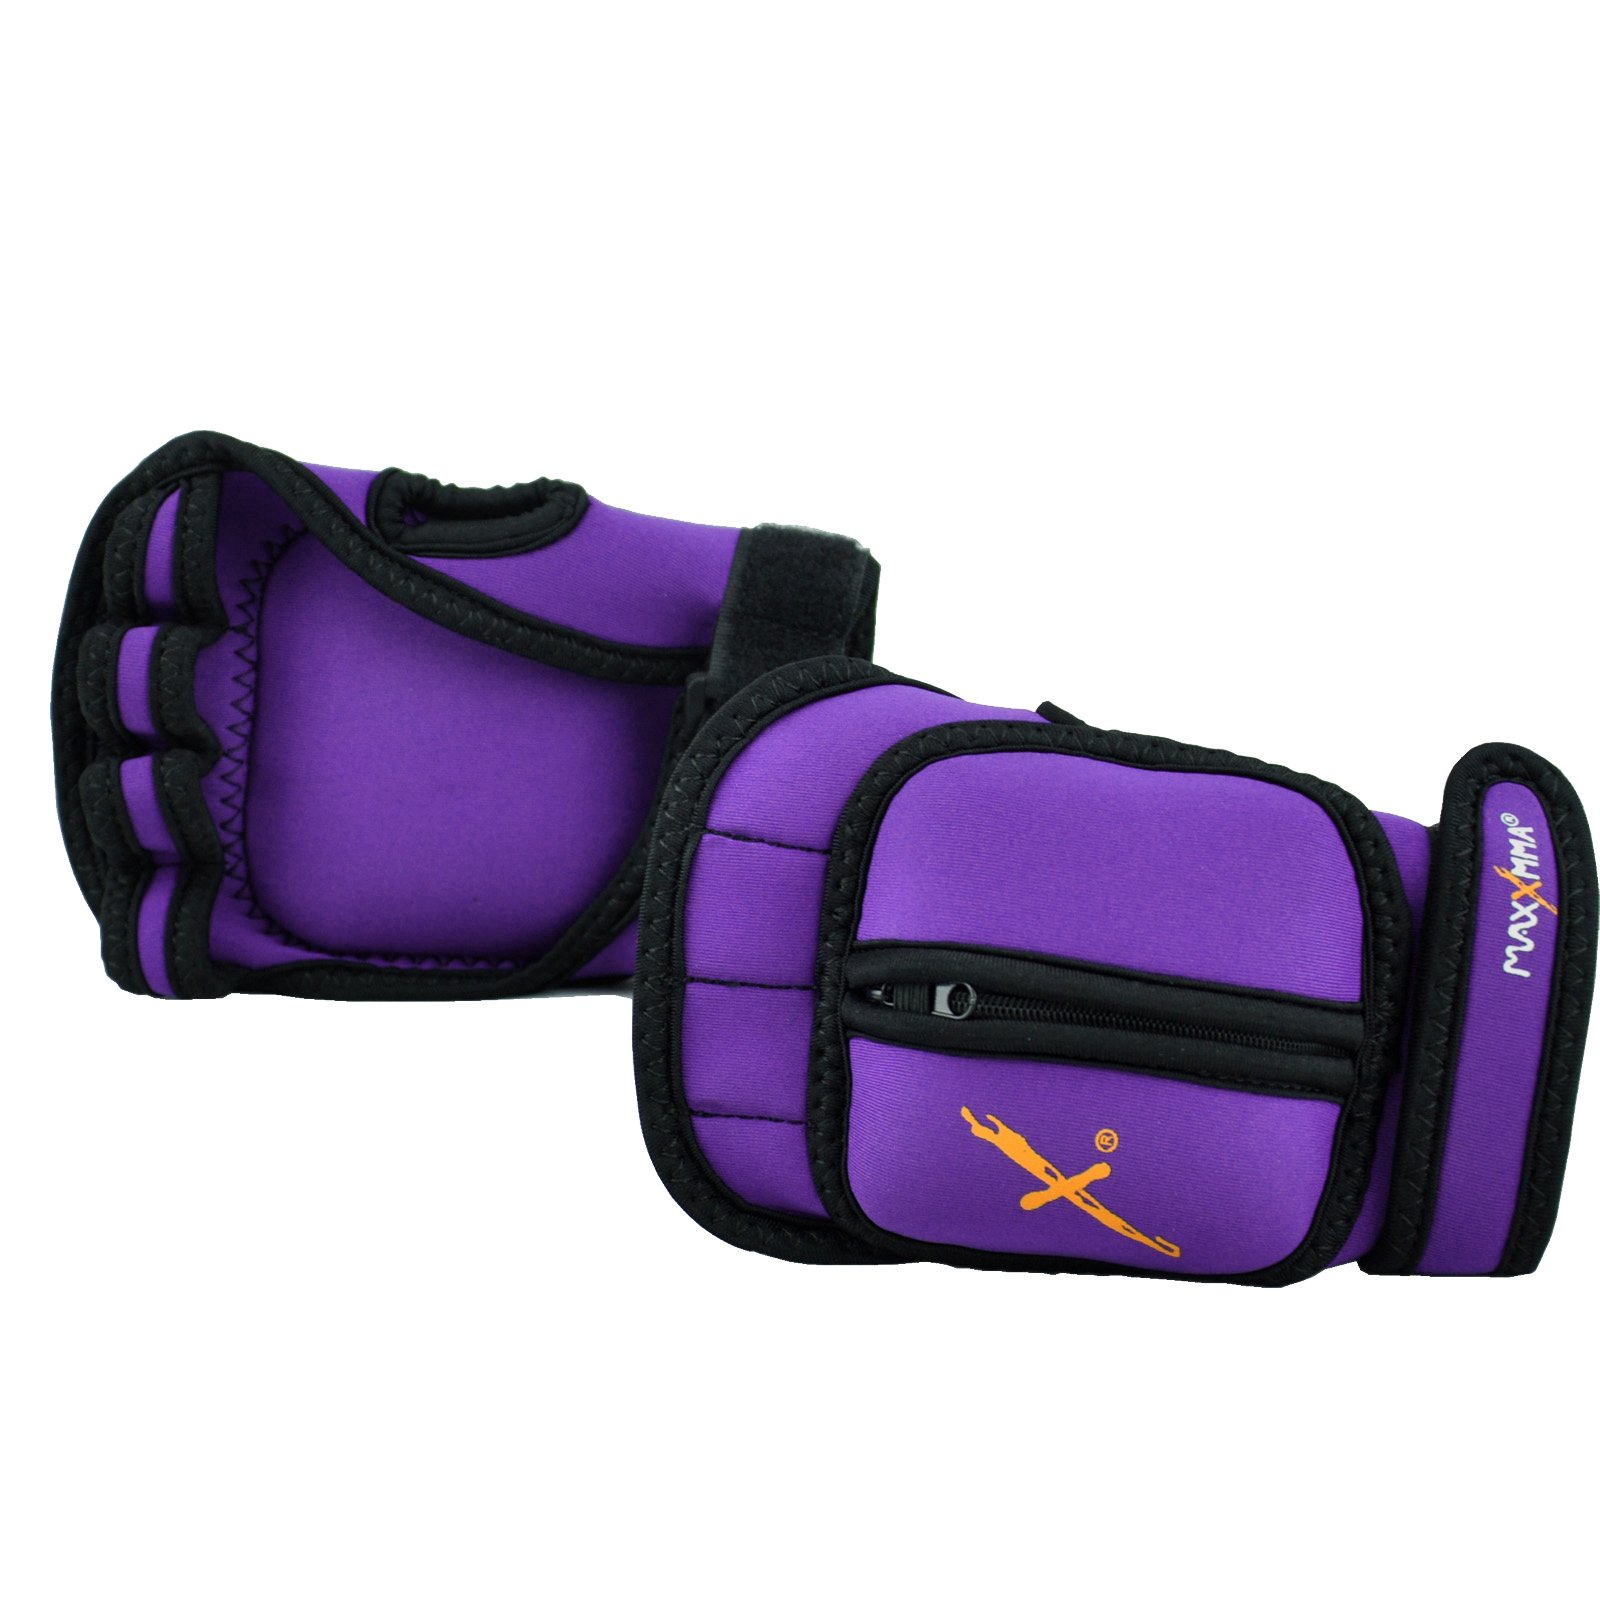 MaxxMMA Adjustable Weighted Gloves - Removable Weight 1 lb. x 2 (Purple)